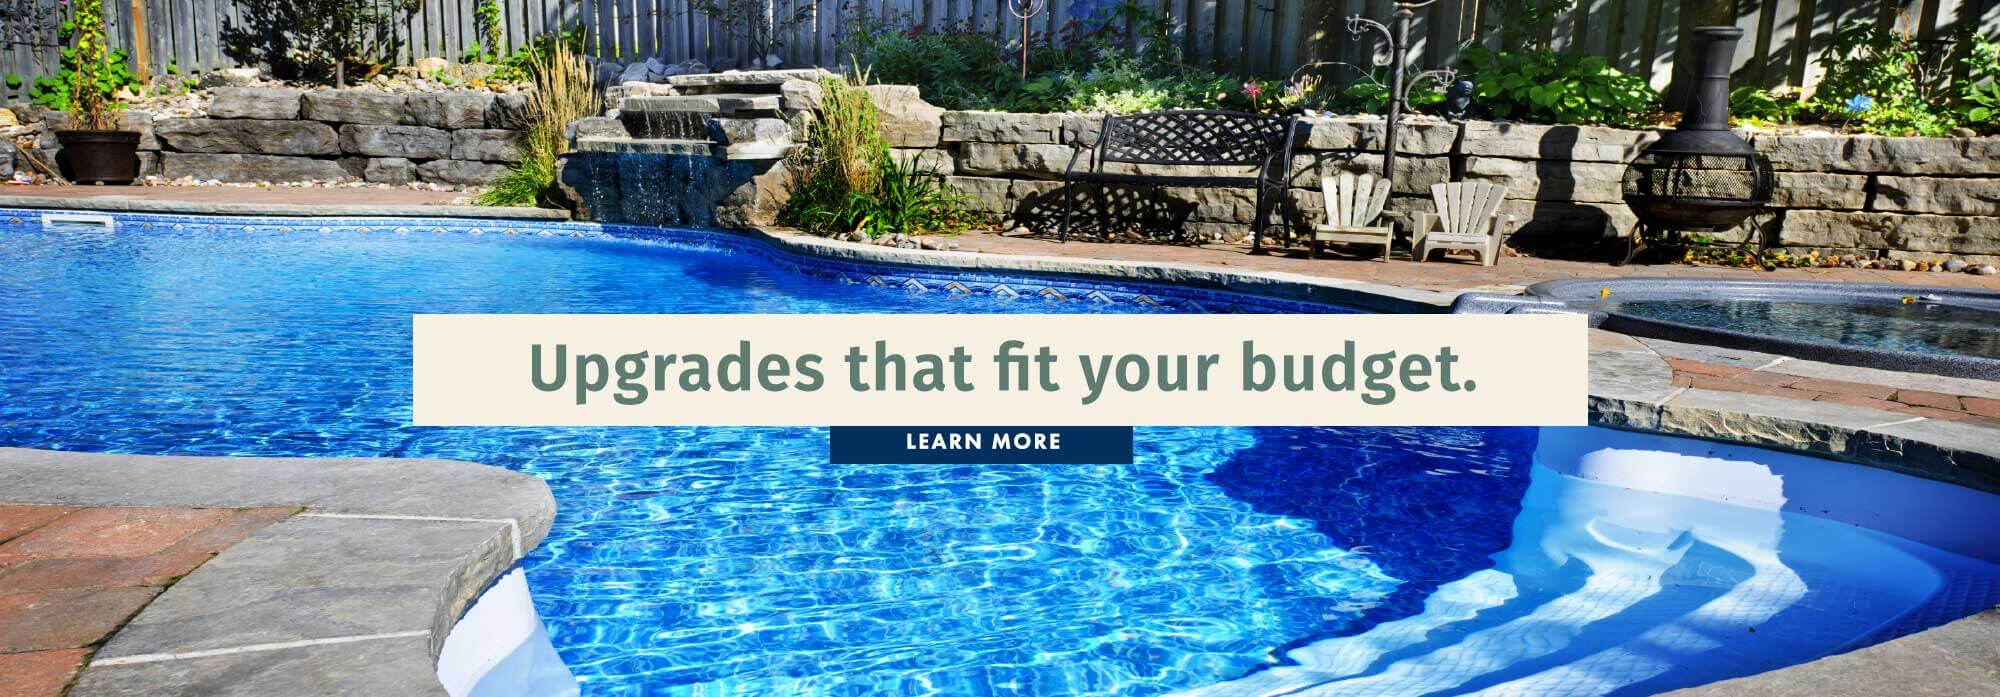 Upgrades that fit your budget